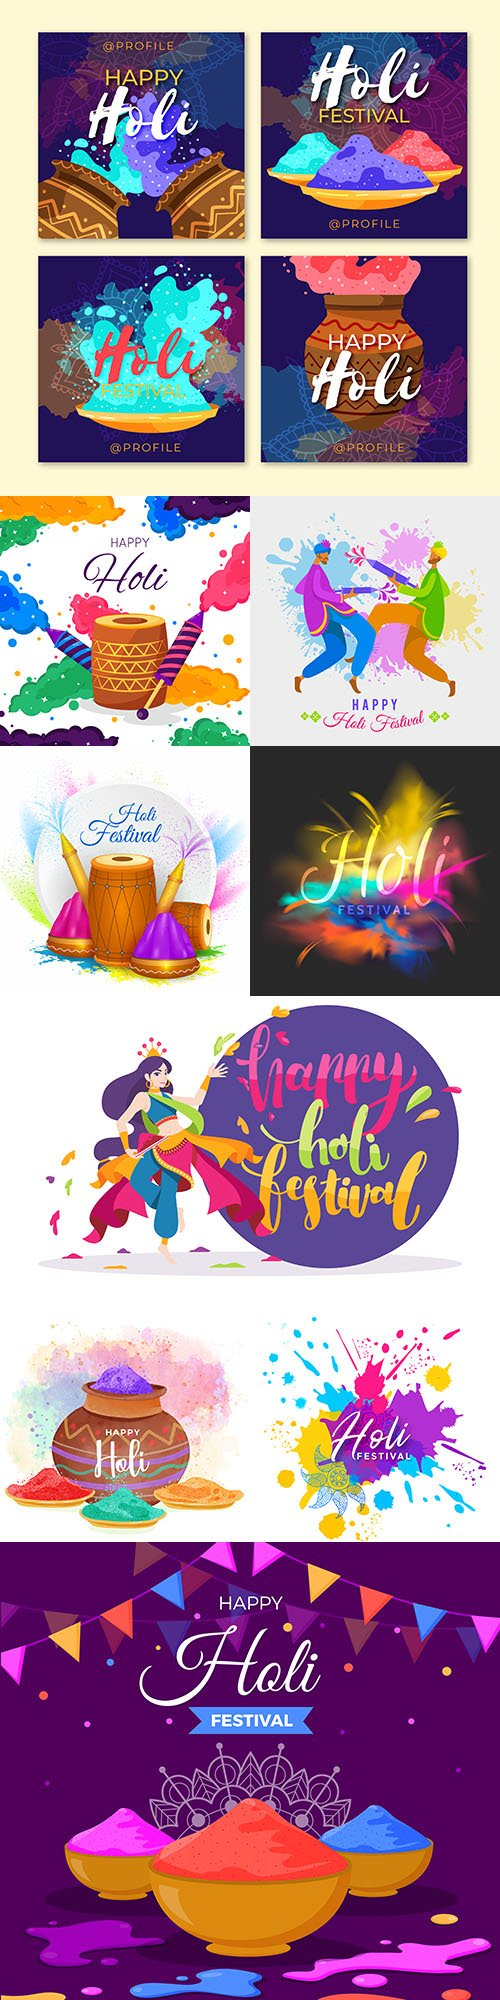 Happy holi traditional festival colorful illustrations